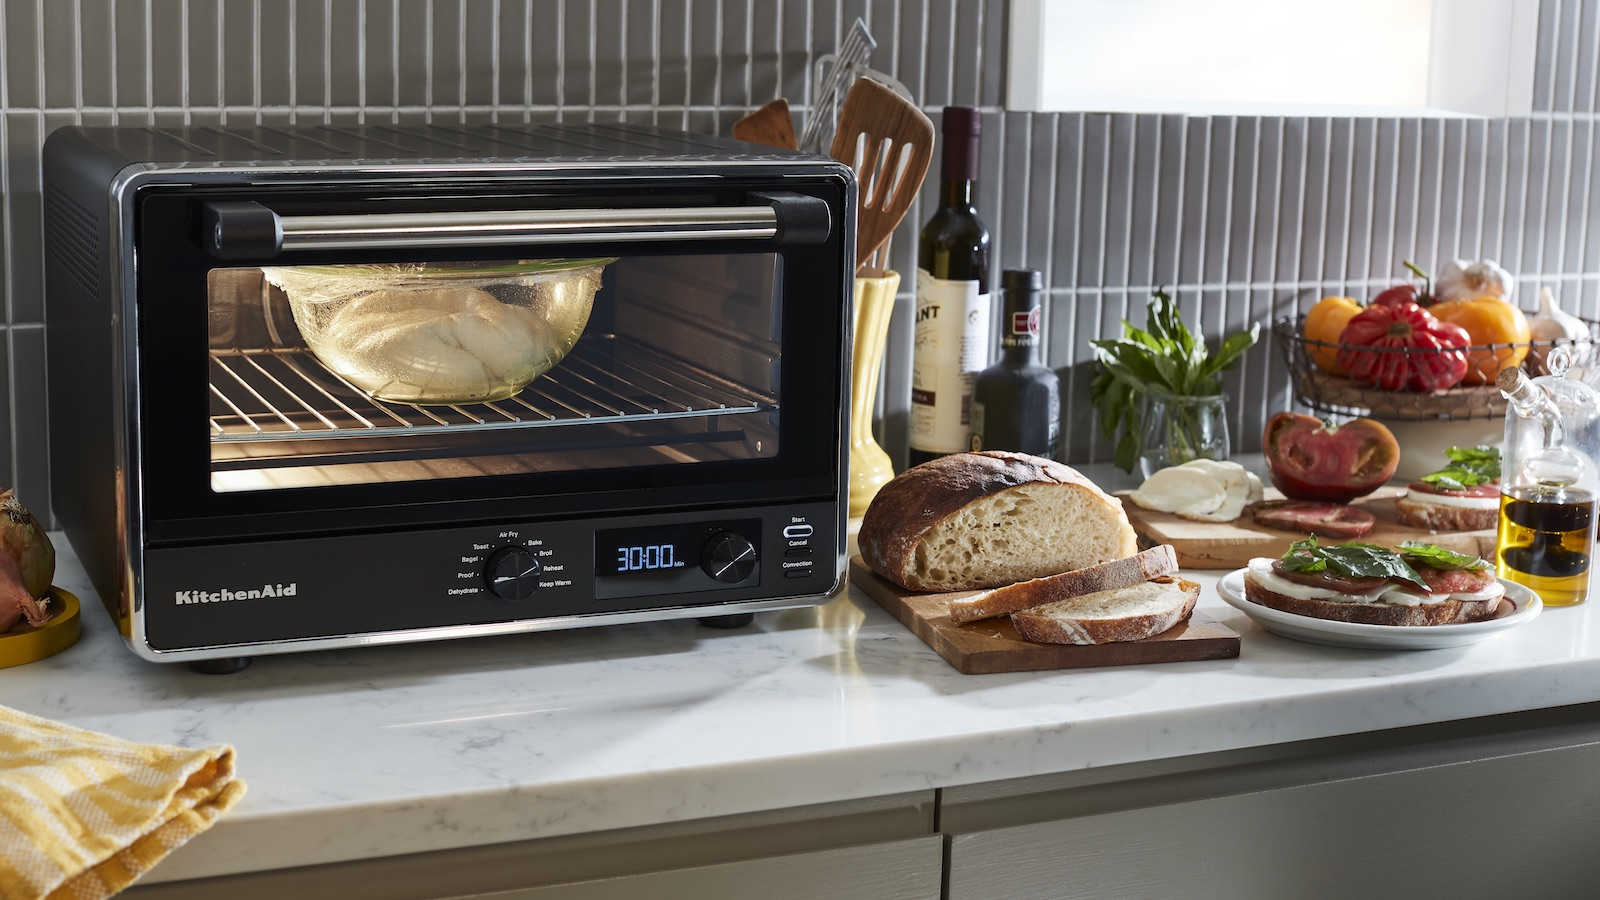 15 Smart kitchen gadgets to fast track your cooking